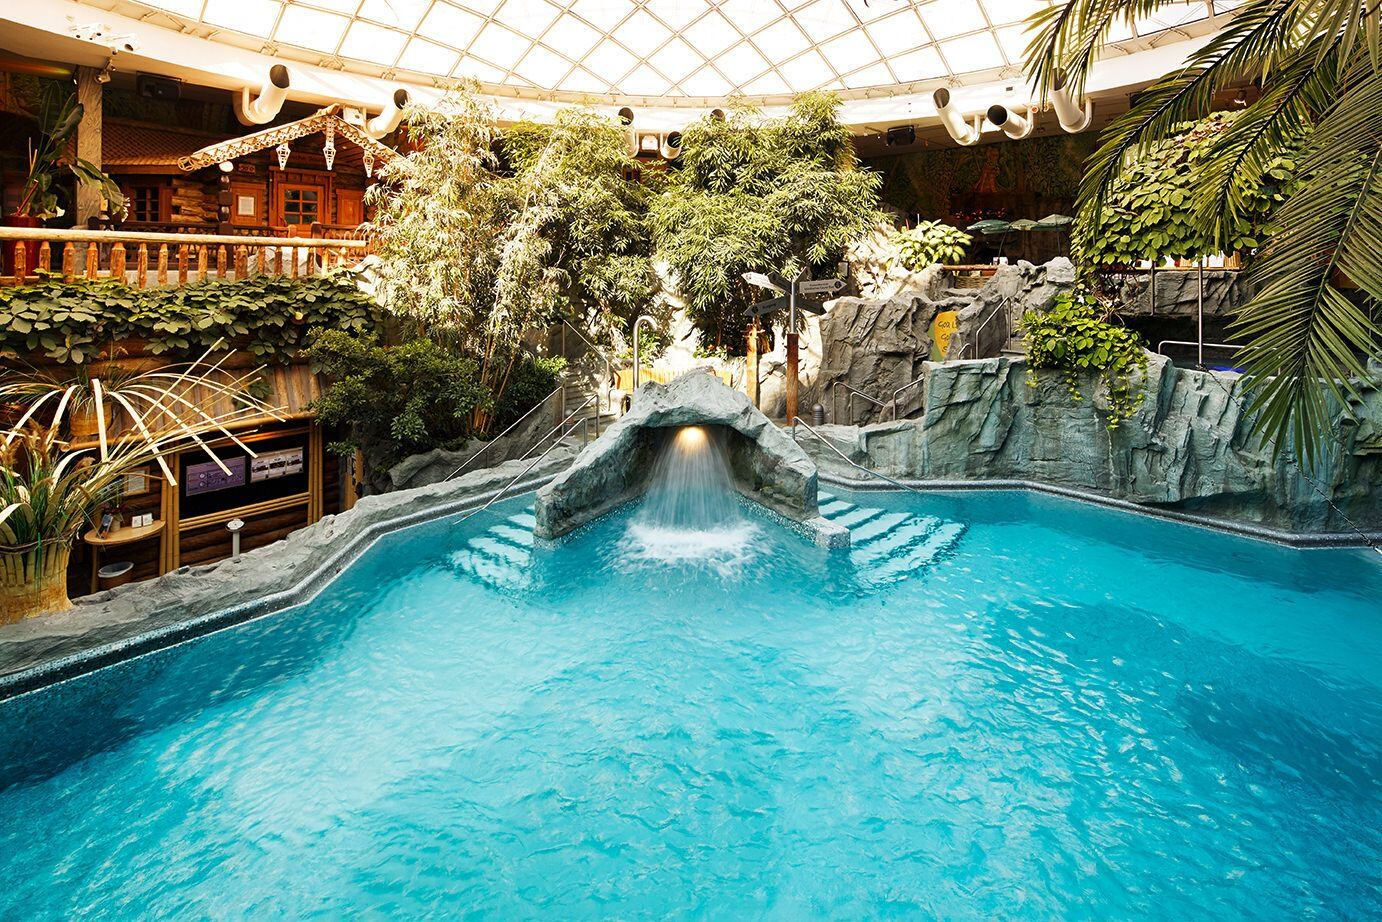 An indoor pool that is surrounded by trees and stores at a resort with a glass roof.